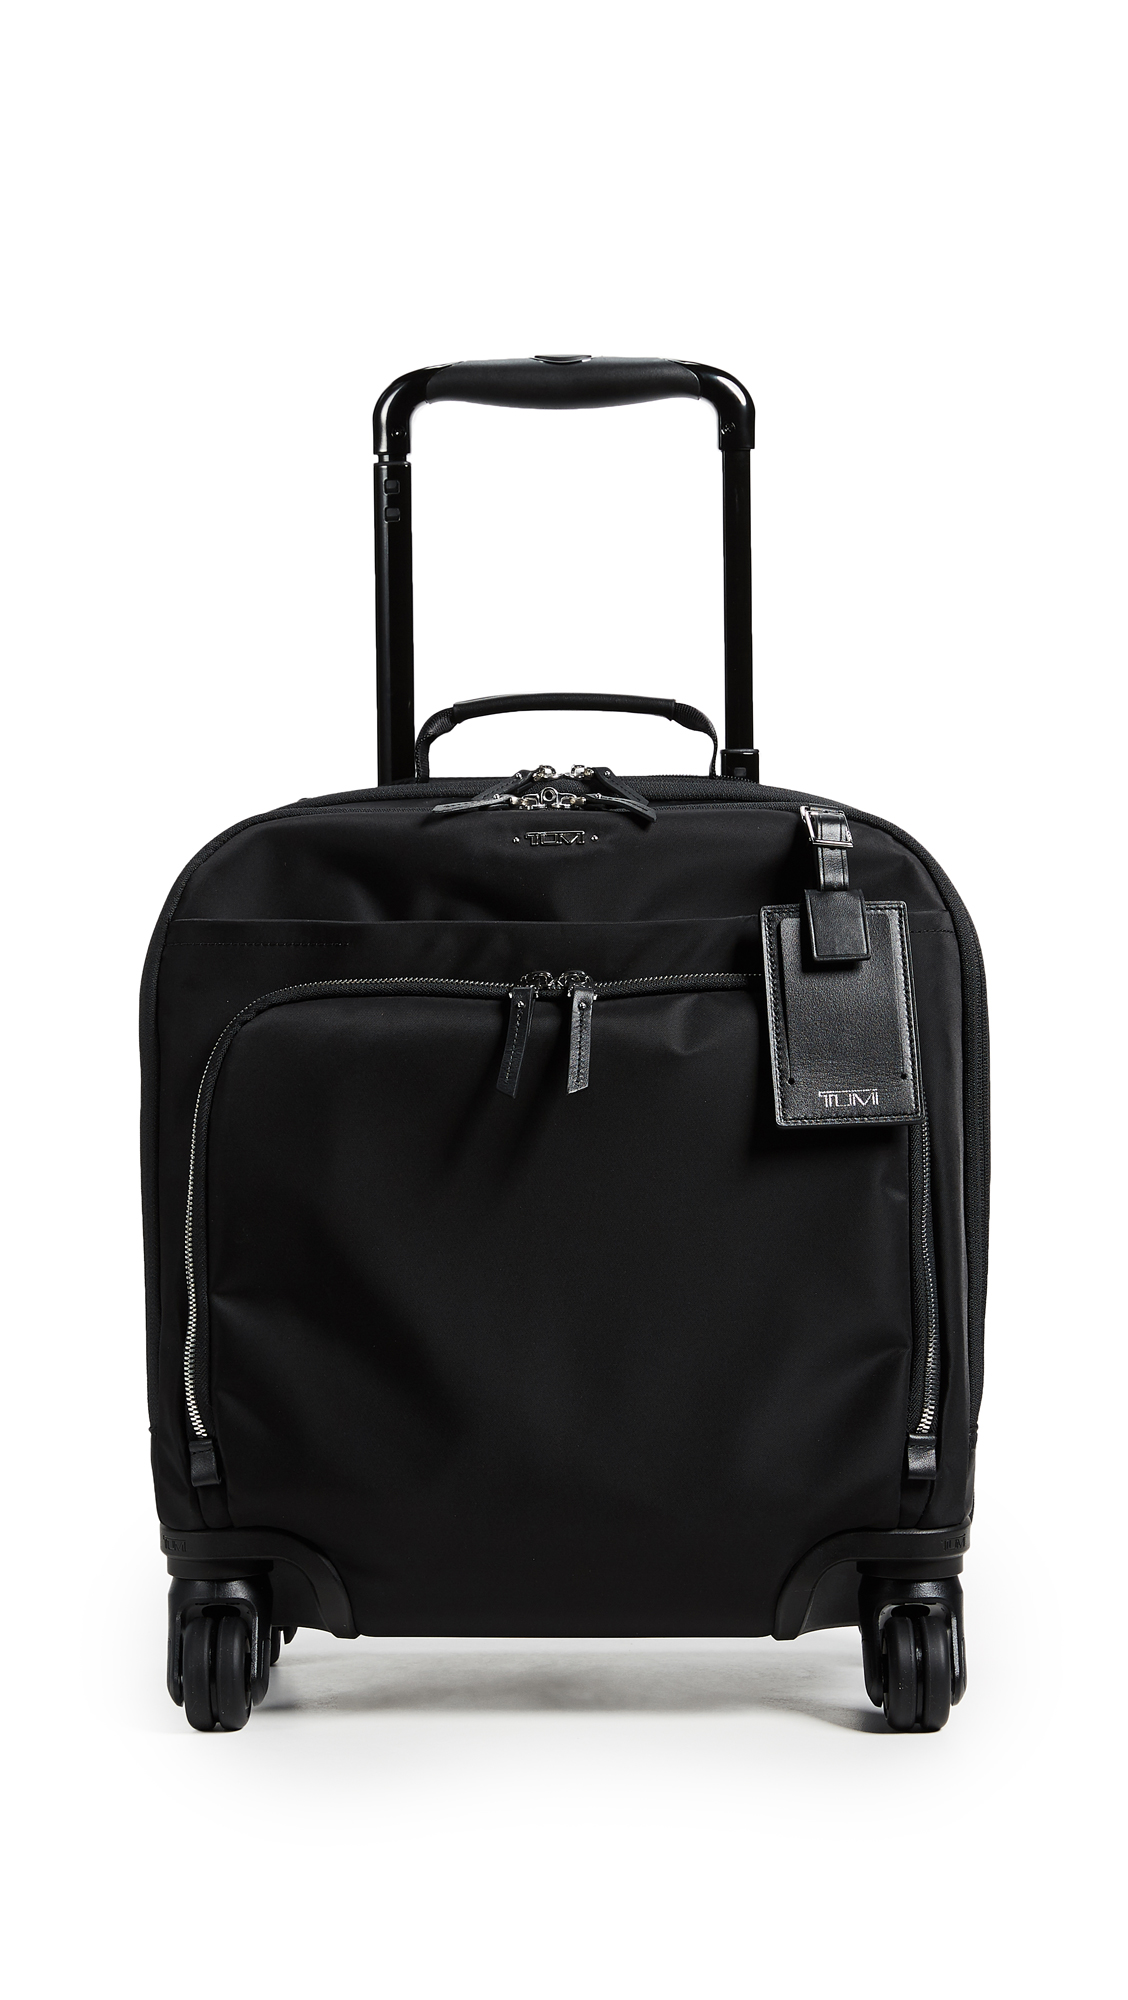 OSLO 4 WHEEL COMPACT CARRY ON SUITCASE